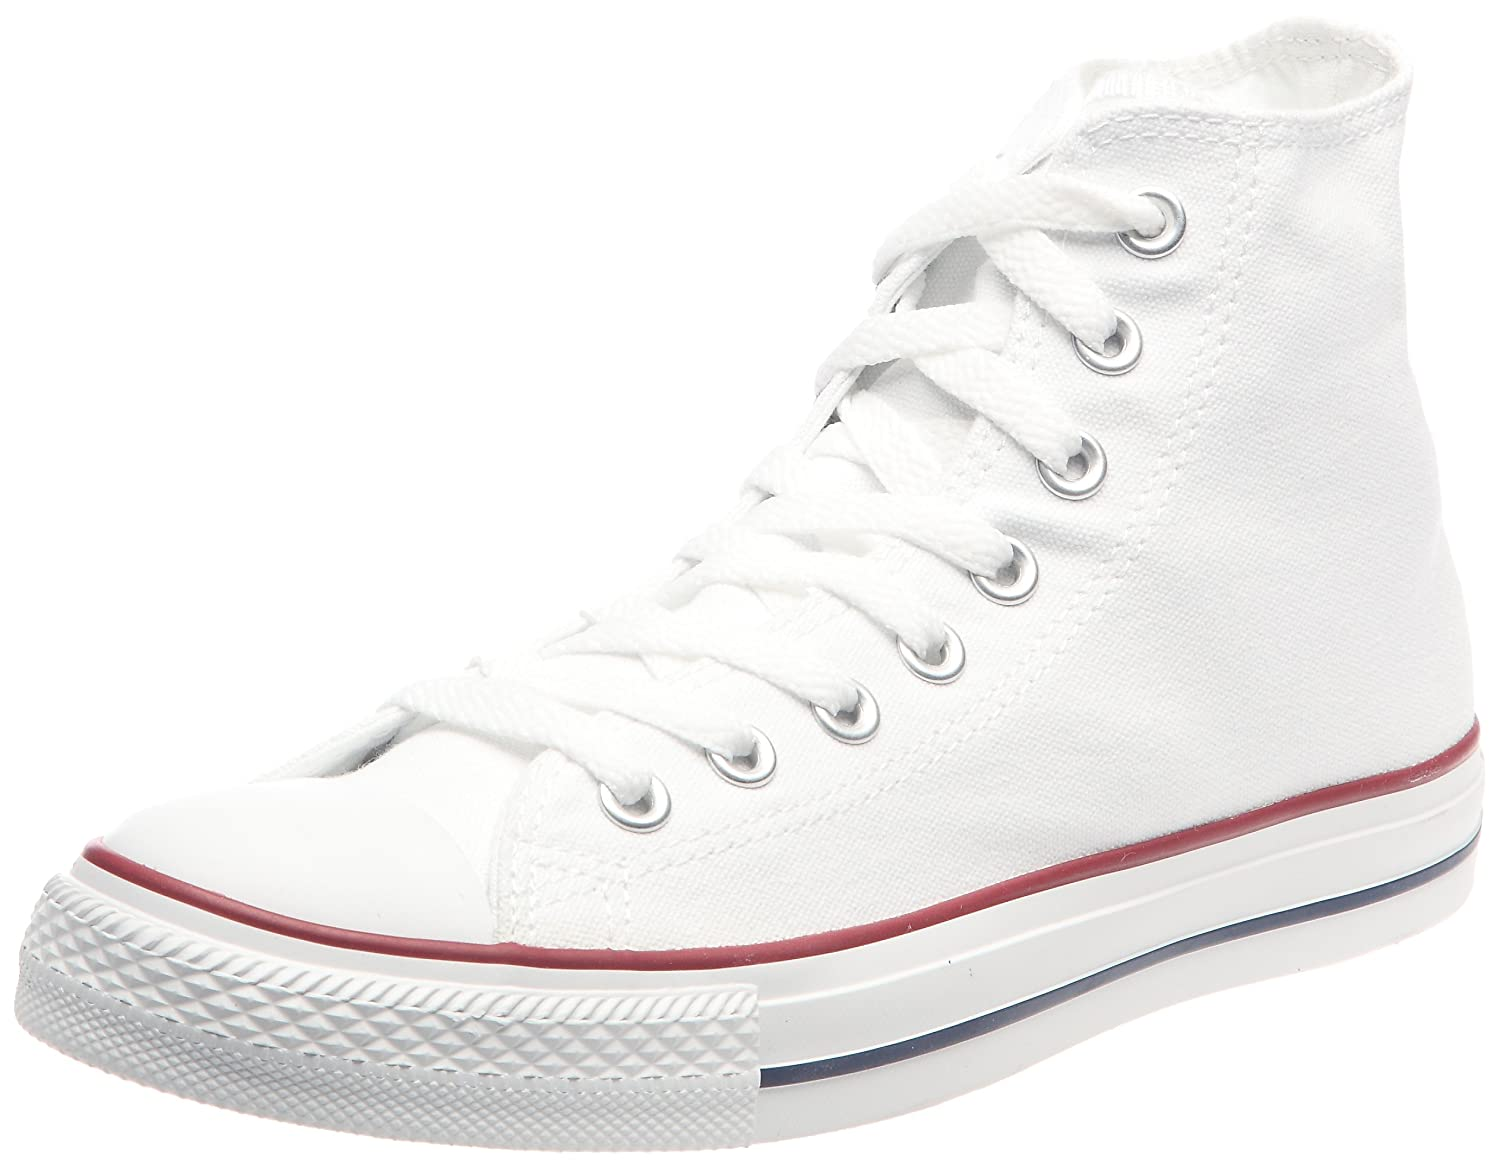 Converse Chuck Taylor All Star Core Hi B00IRXBQH8 12 D(M) US|White